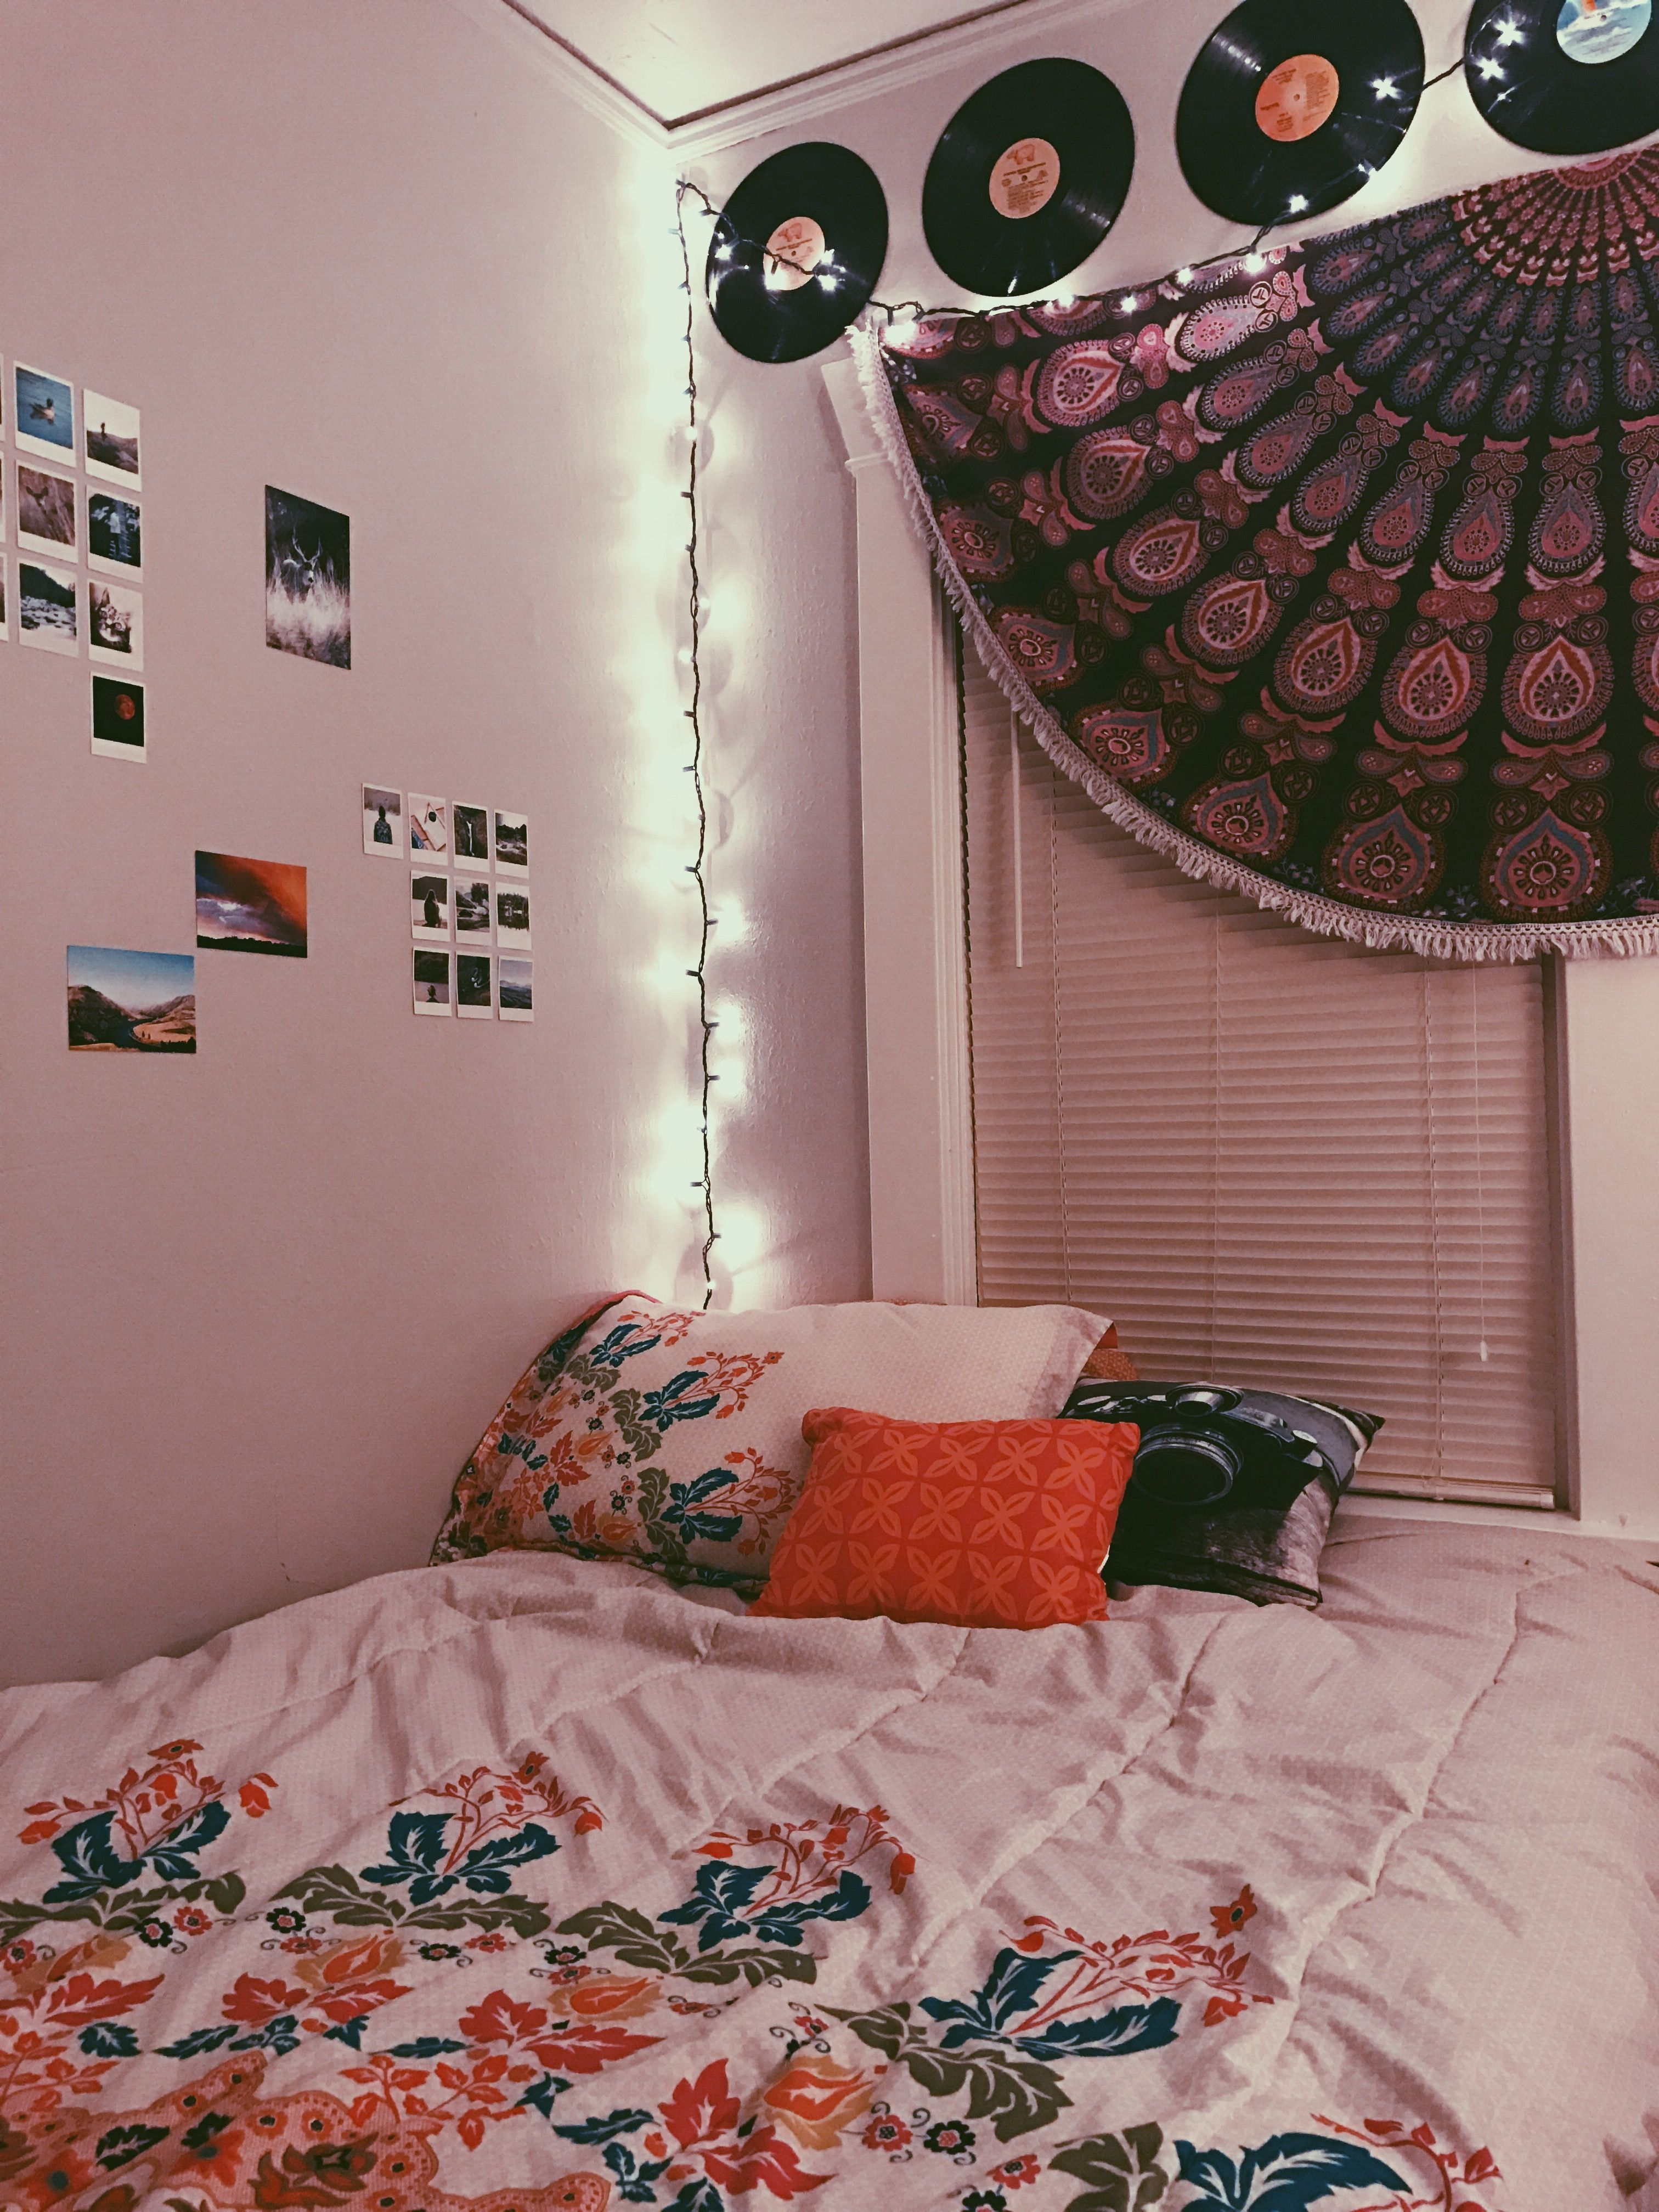 Grunge Teen Bedroom Apartment With Vinyls